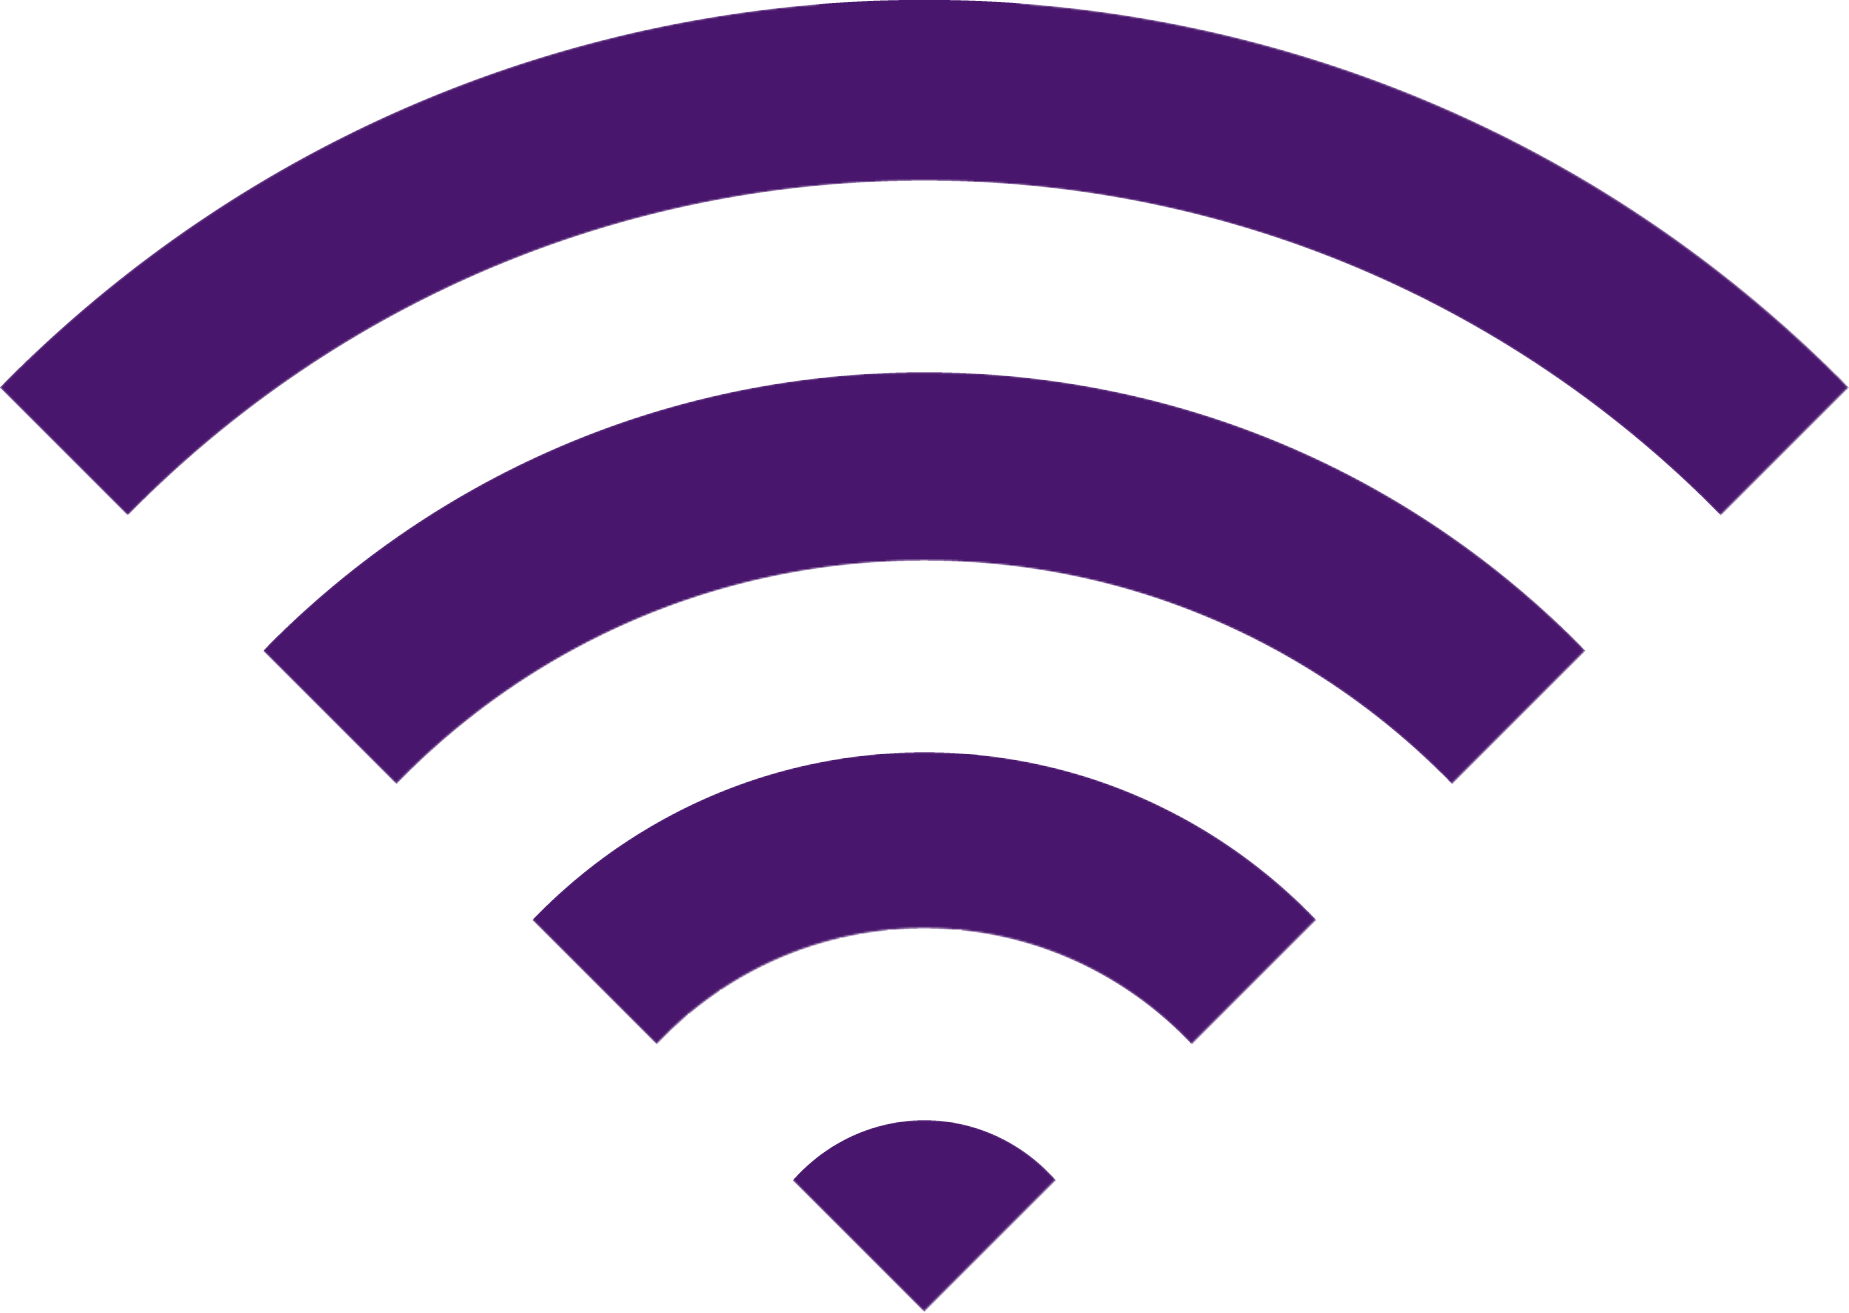 Wi-Fi performance and your device | Support | TELUS com